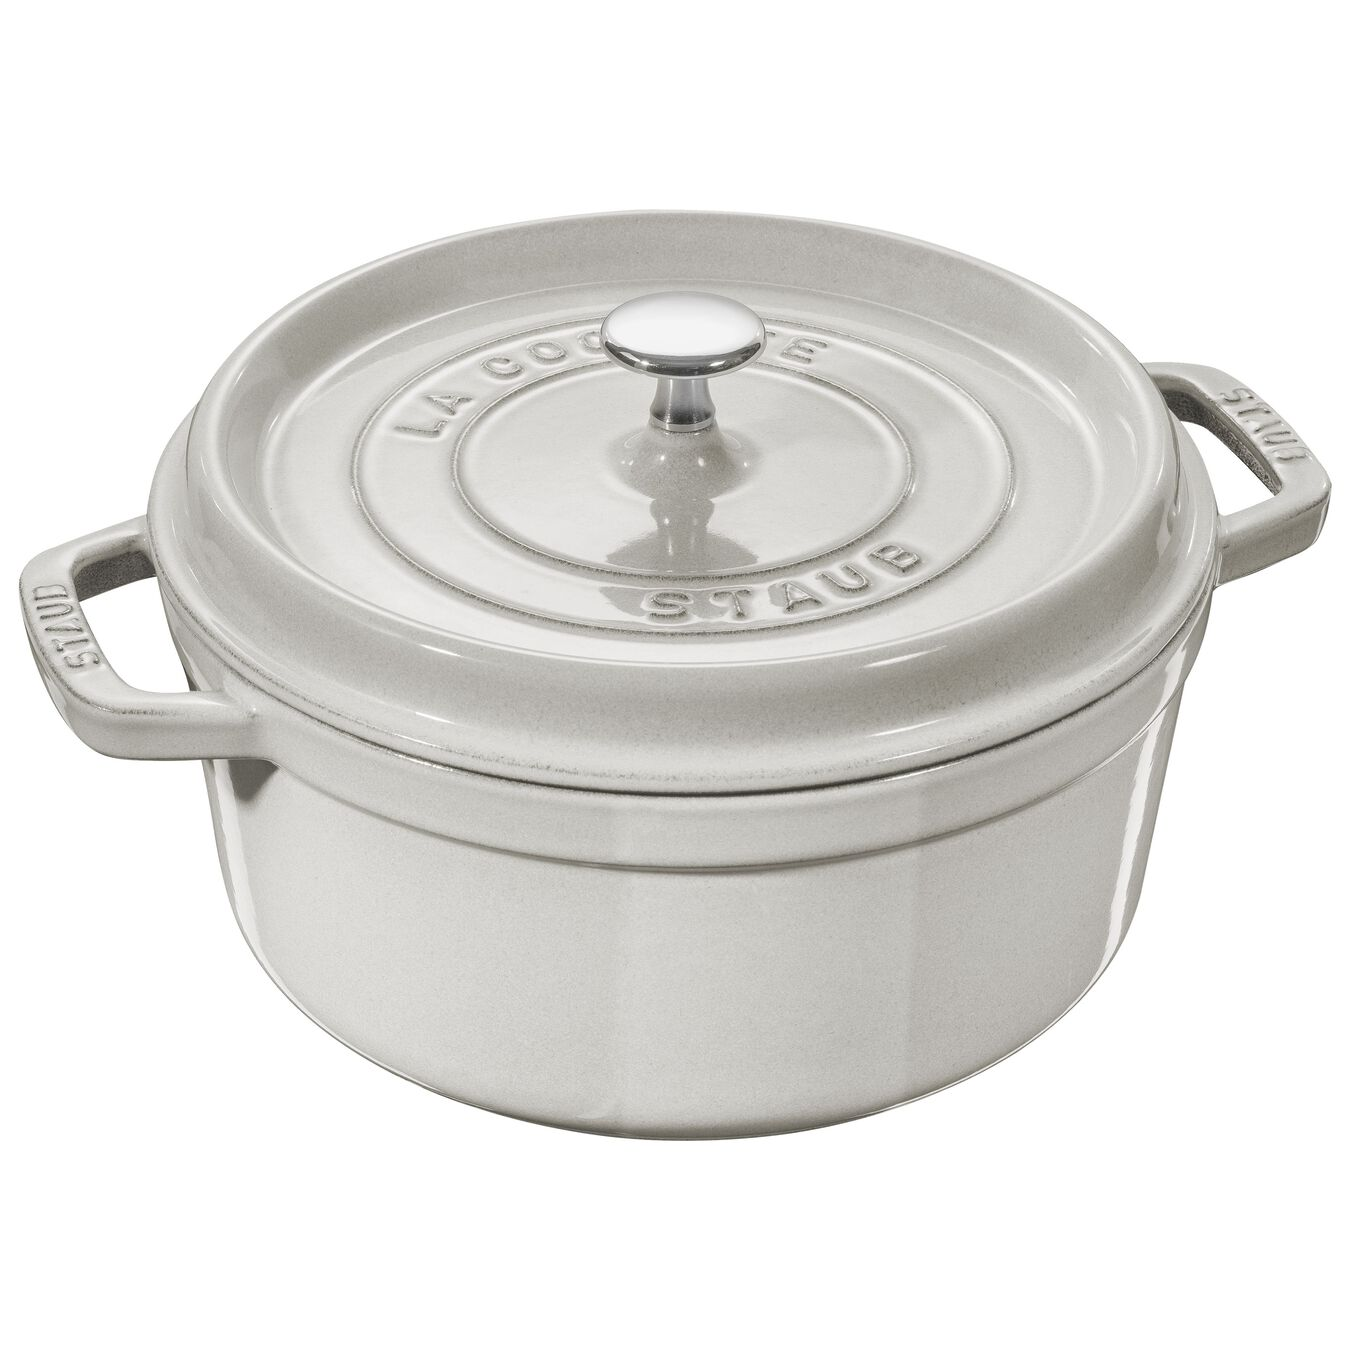 5.25 l round Cocotte, white truffle,,large 1